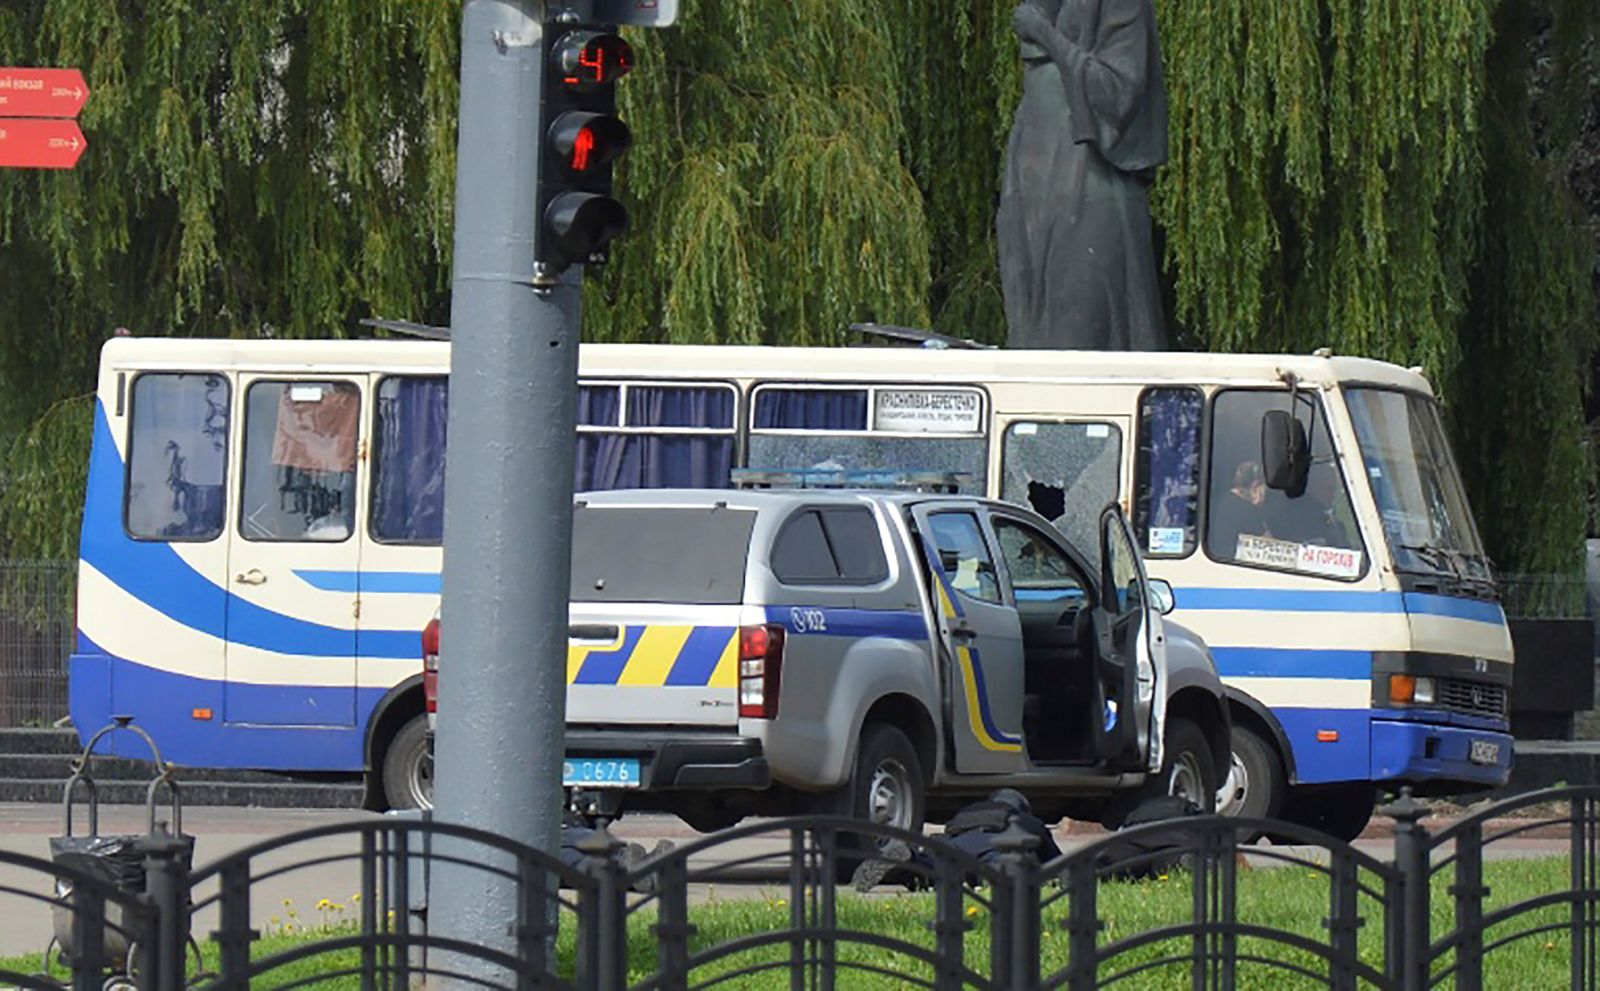 A view shows a passenger bus seized by an unidentified person in Lutsk